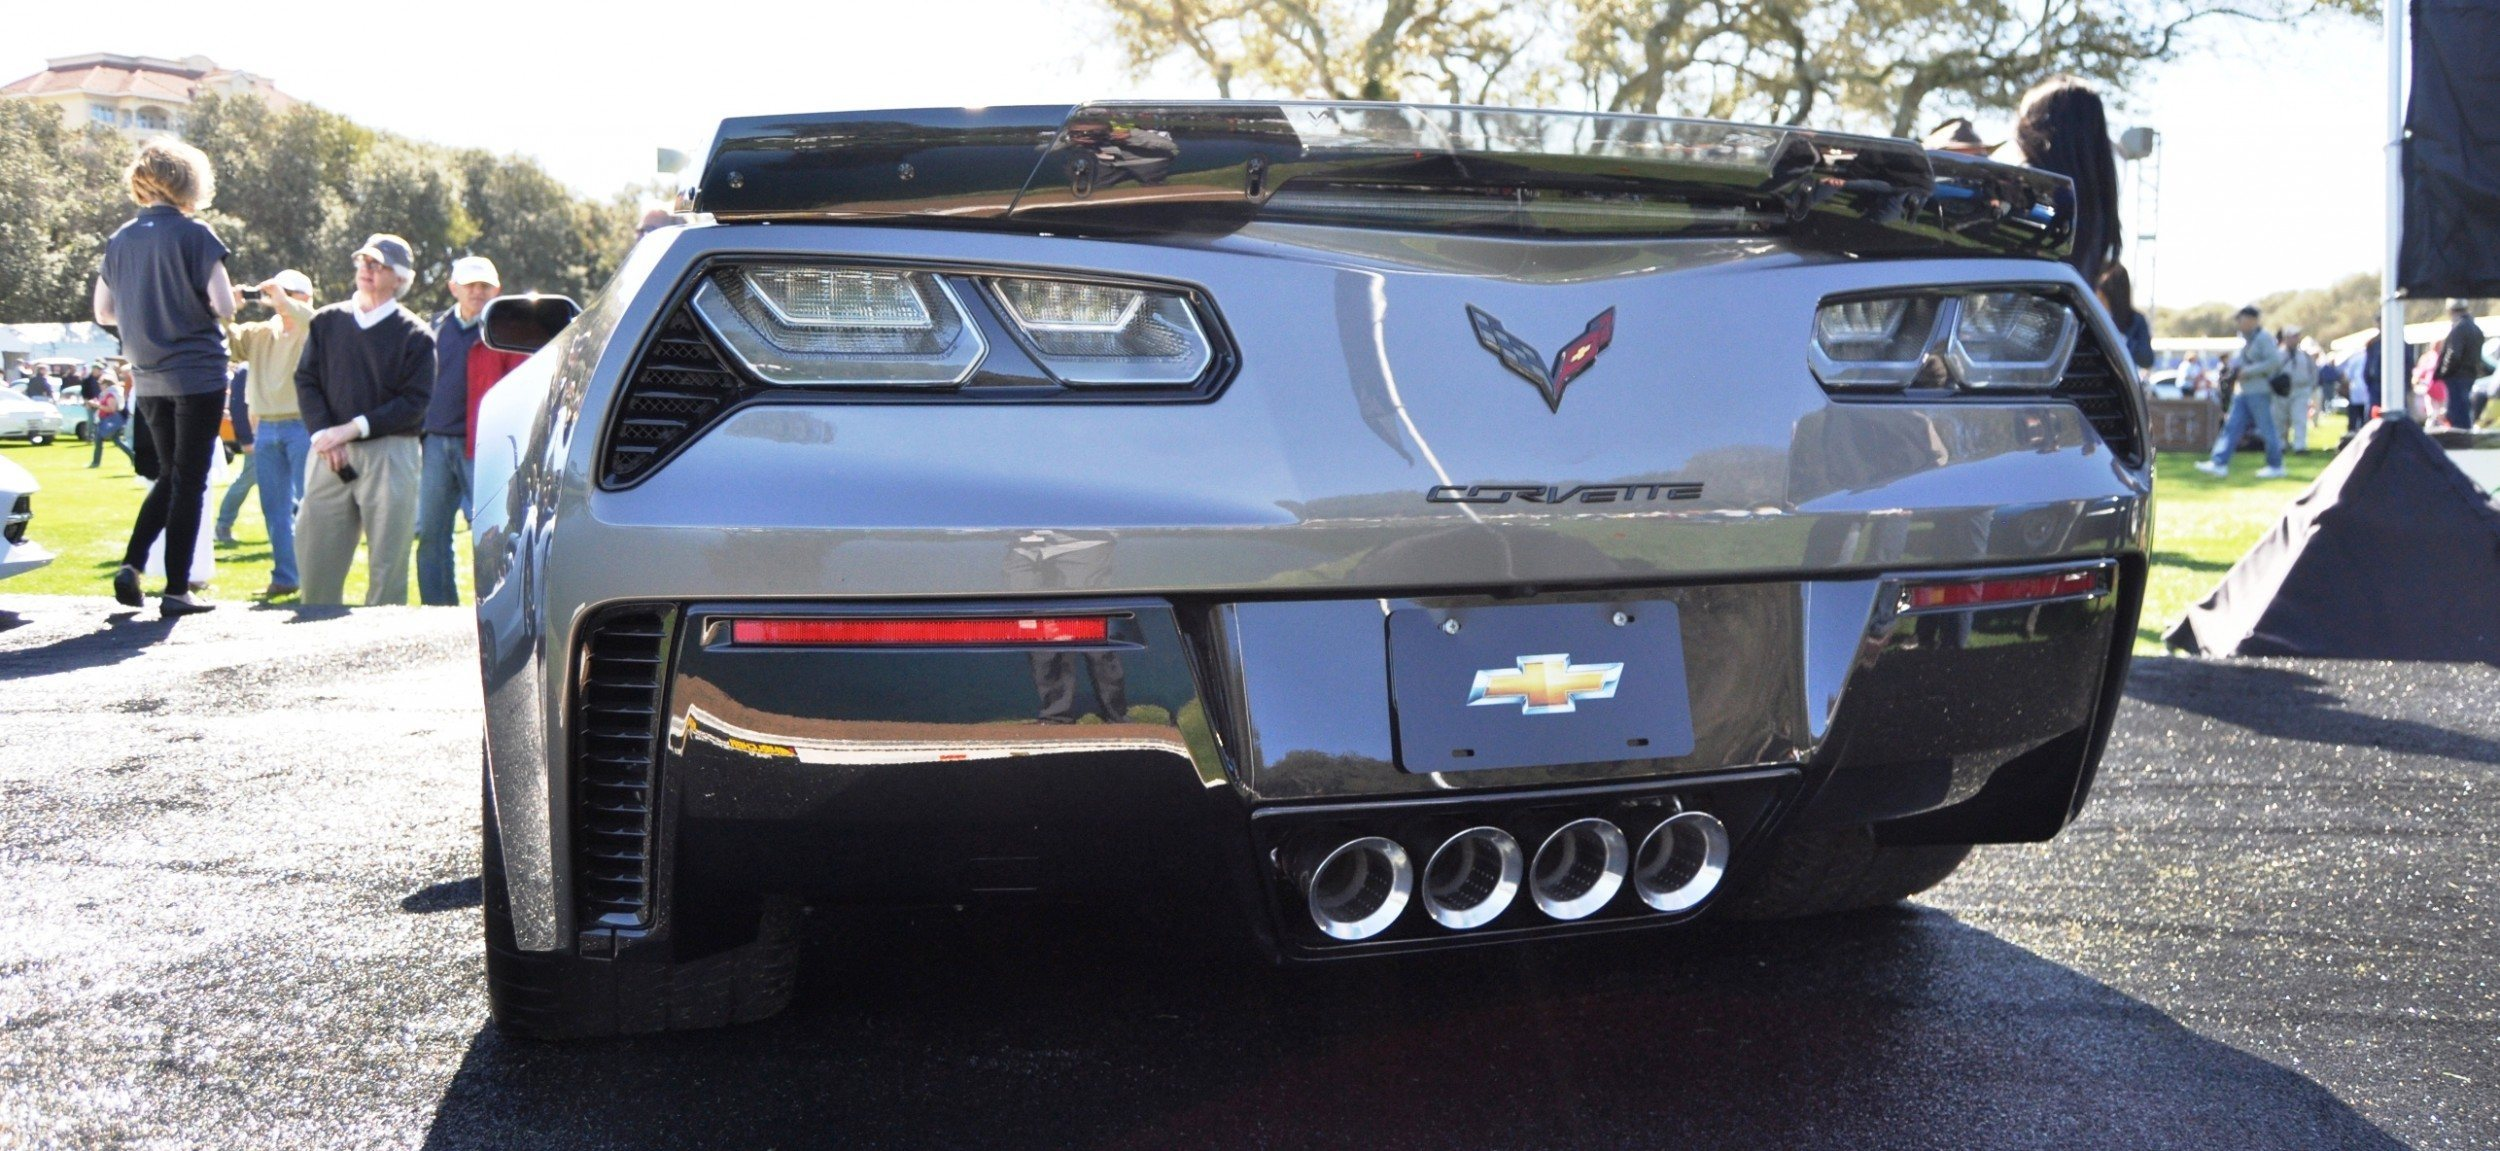 2015 Z06 -- First Outdoor Showing -- Forthcoming Chevrolet Corvette Track Monster Holds Still For 26 High-Res Photos 18